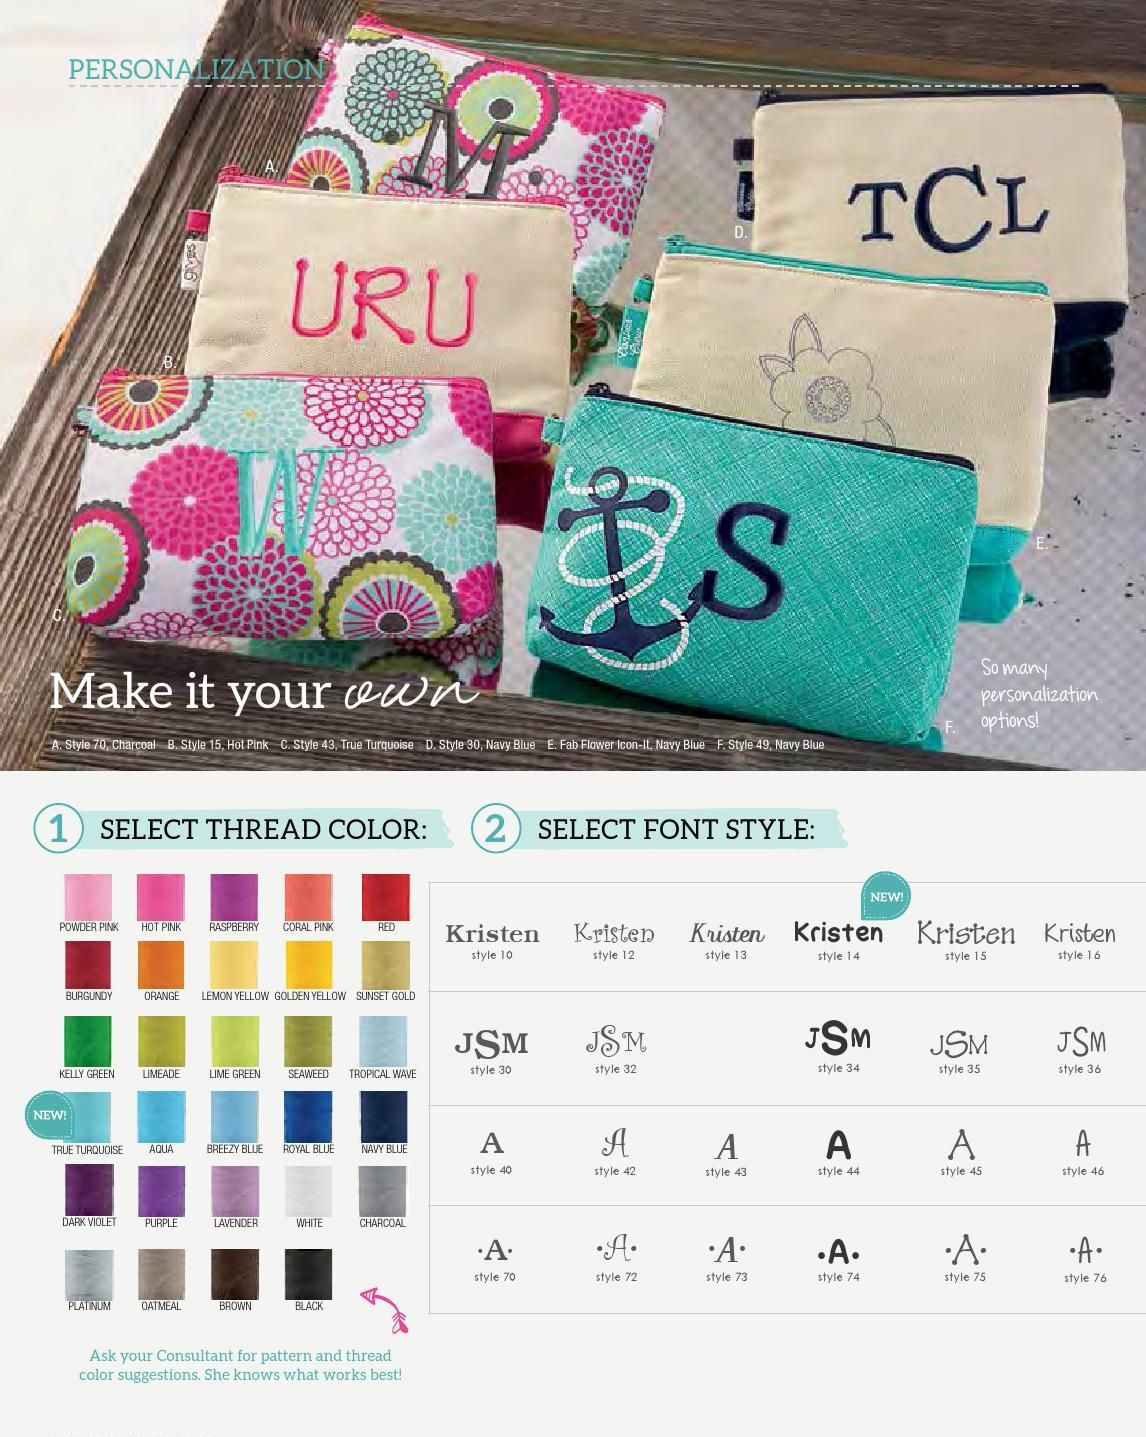 Personalization available at Thirty-One Gifts 2015 Spring-Summer Collection (US) Various colors/prints available. https://www.mythirtyone.com/heavenlymama/